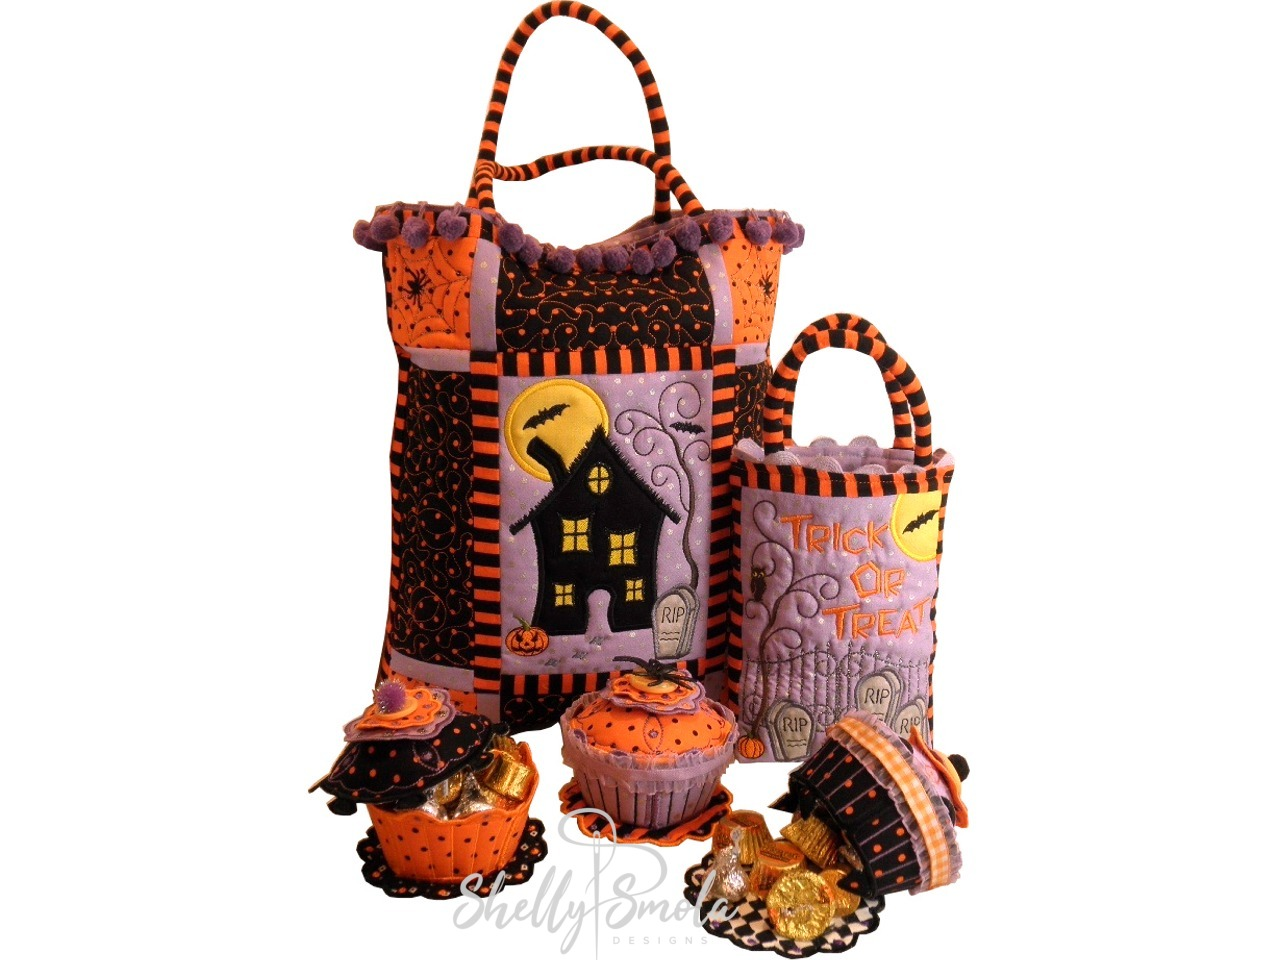 Trick or Treat Bags and Sew Sweet by Shelly Smola